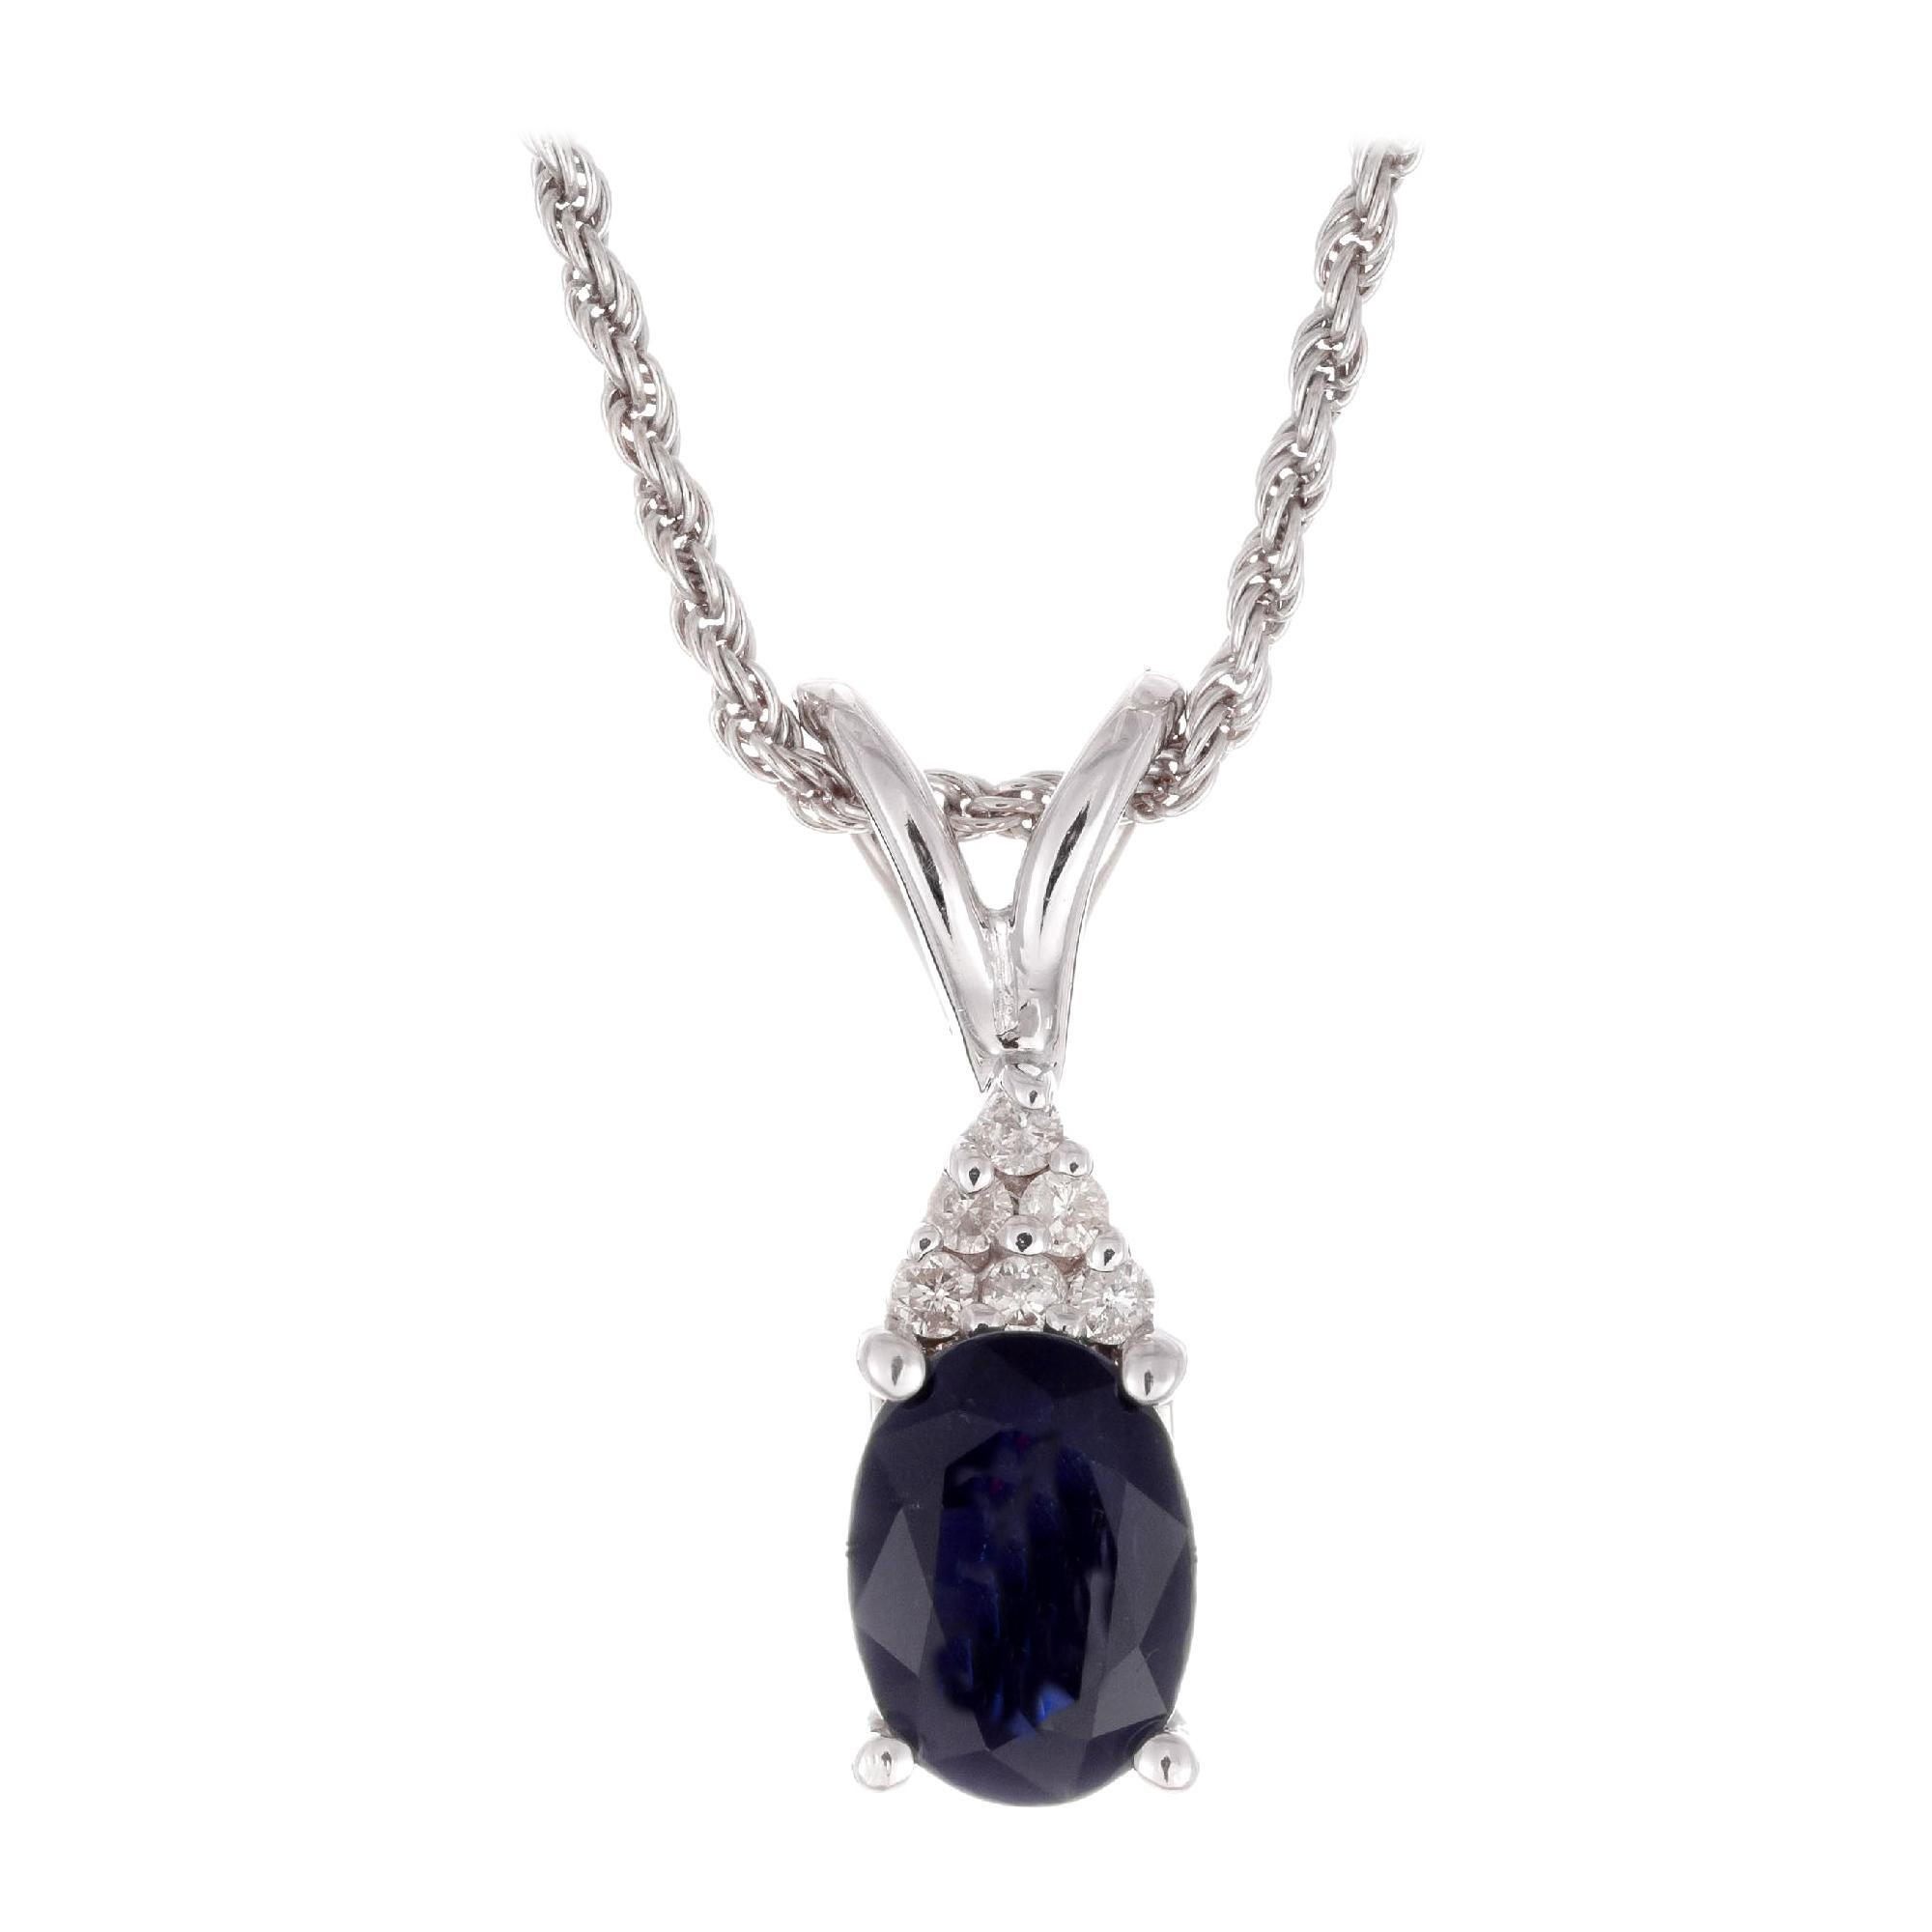 GIA Certified 1.25 Carat Sapphire Diamond White Gold Pendant Necklace